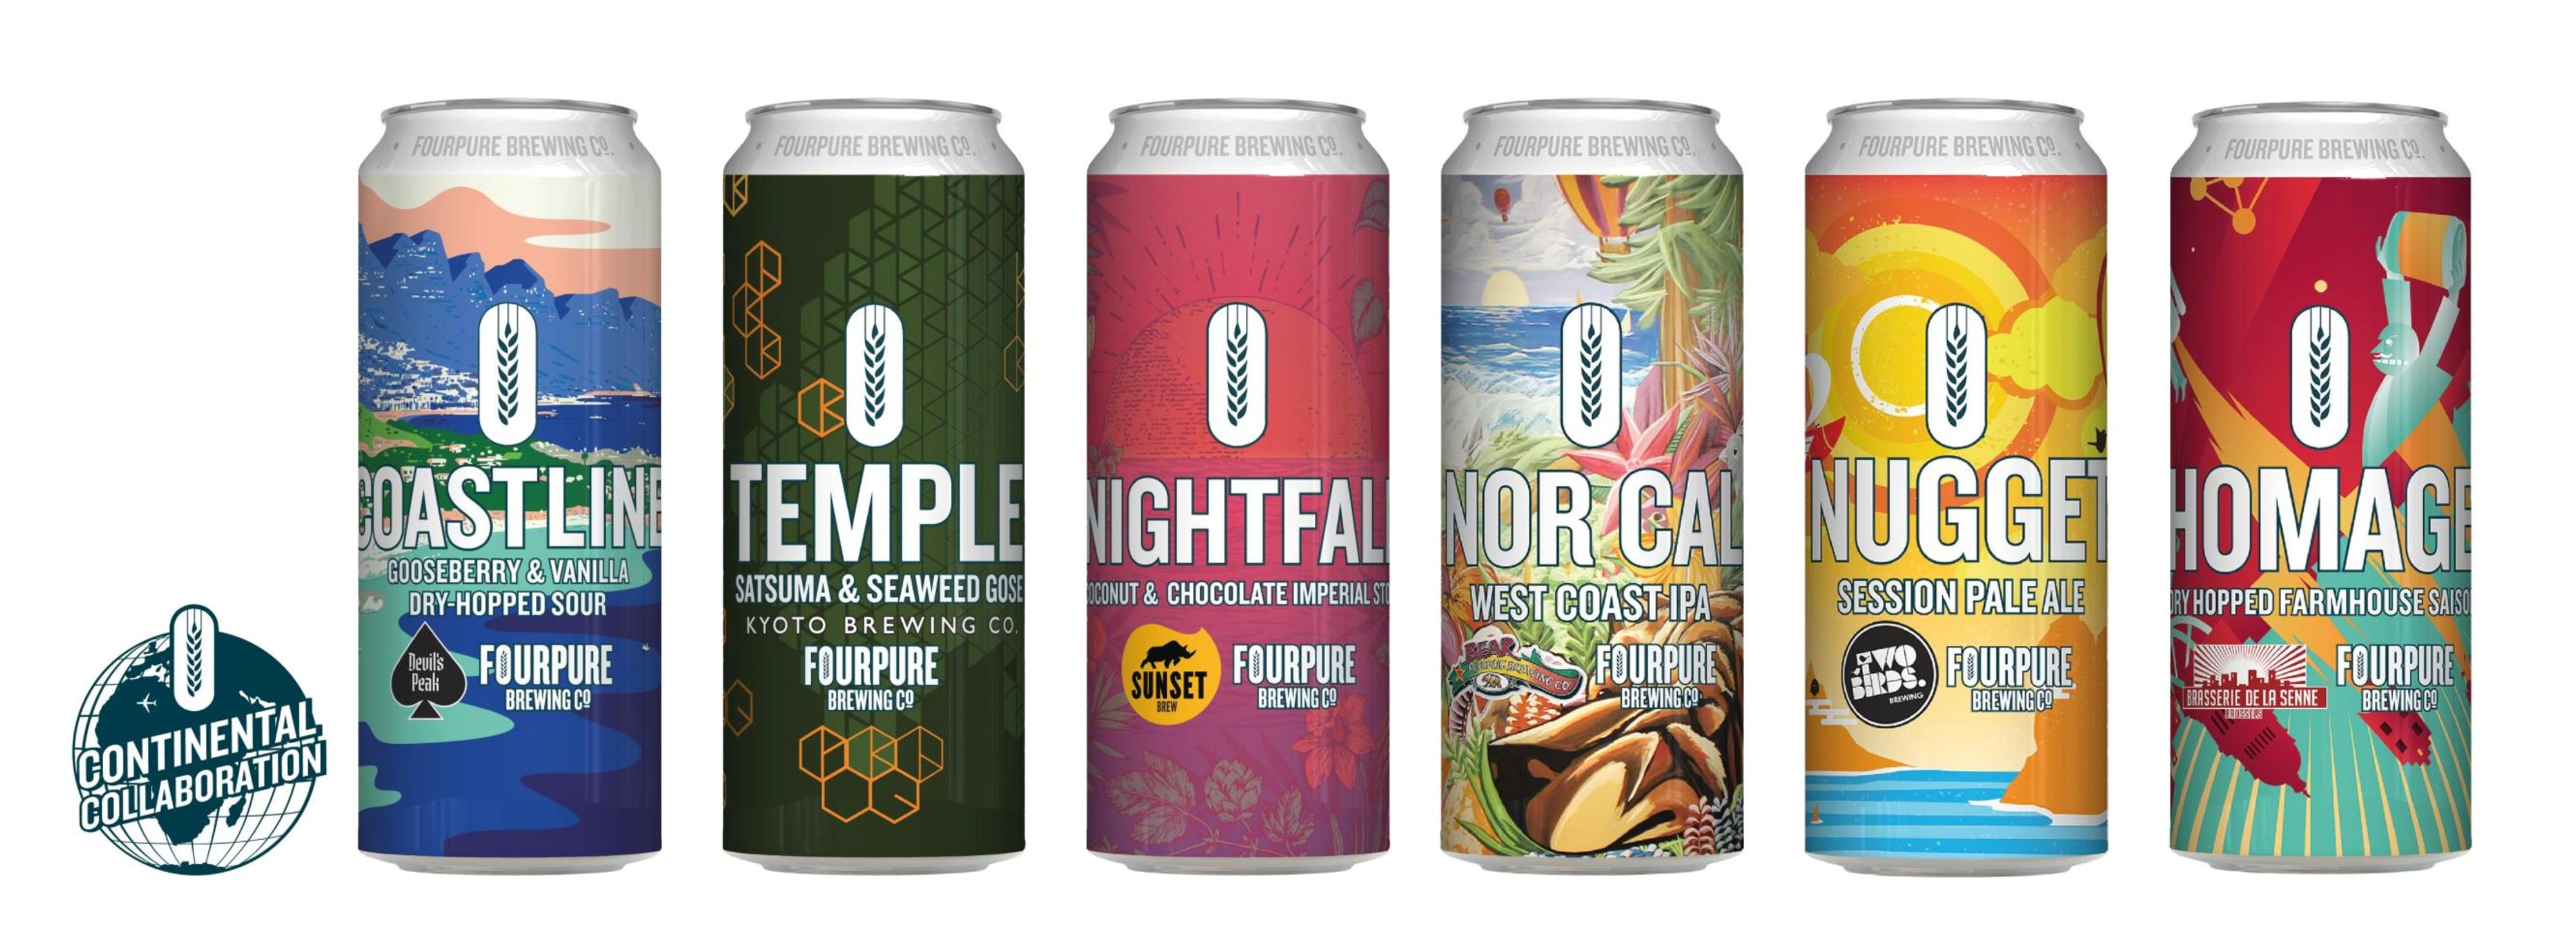 Continental Collaboration cans